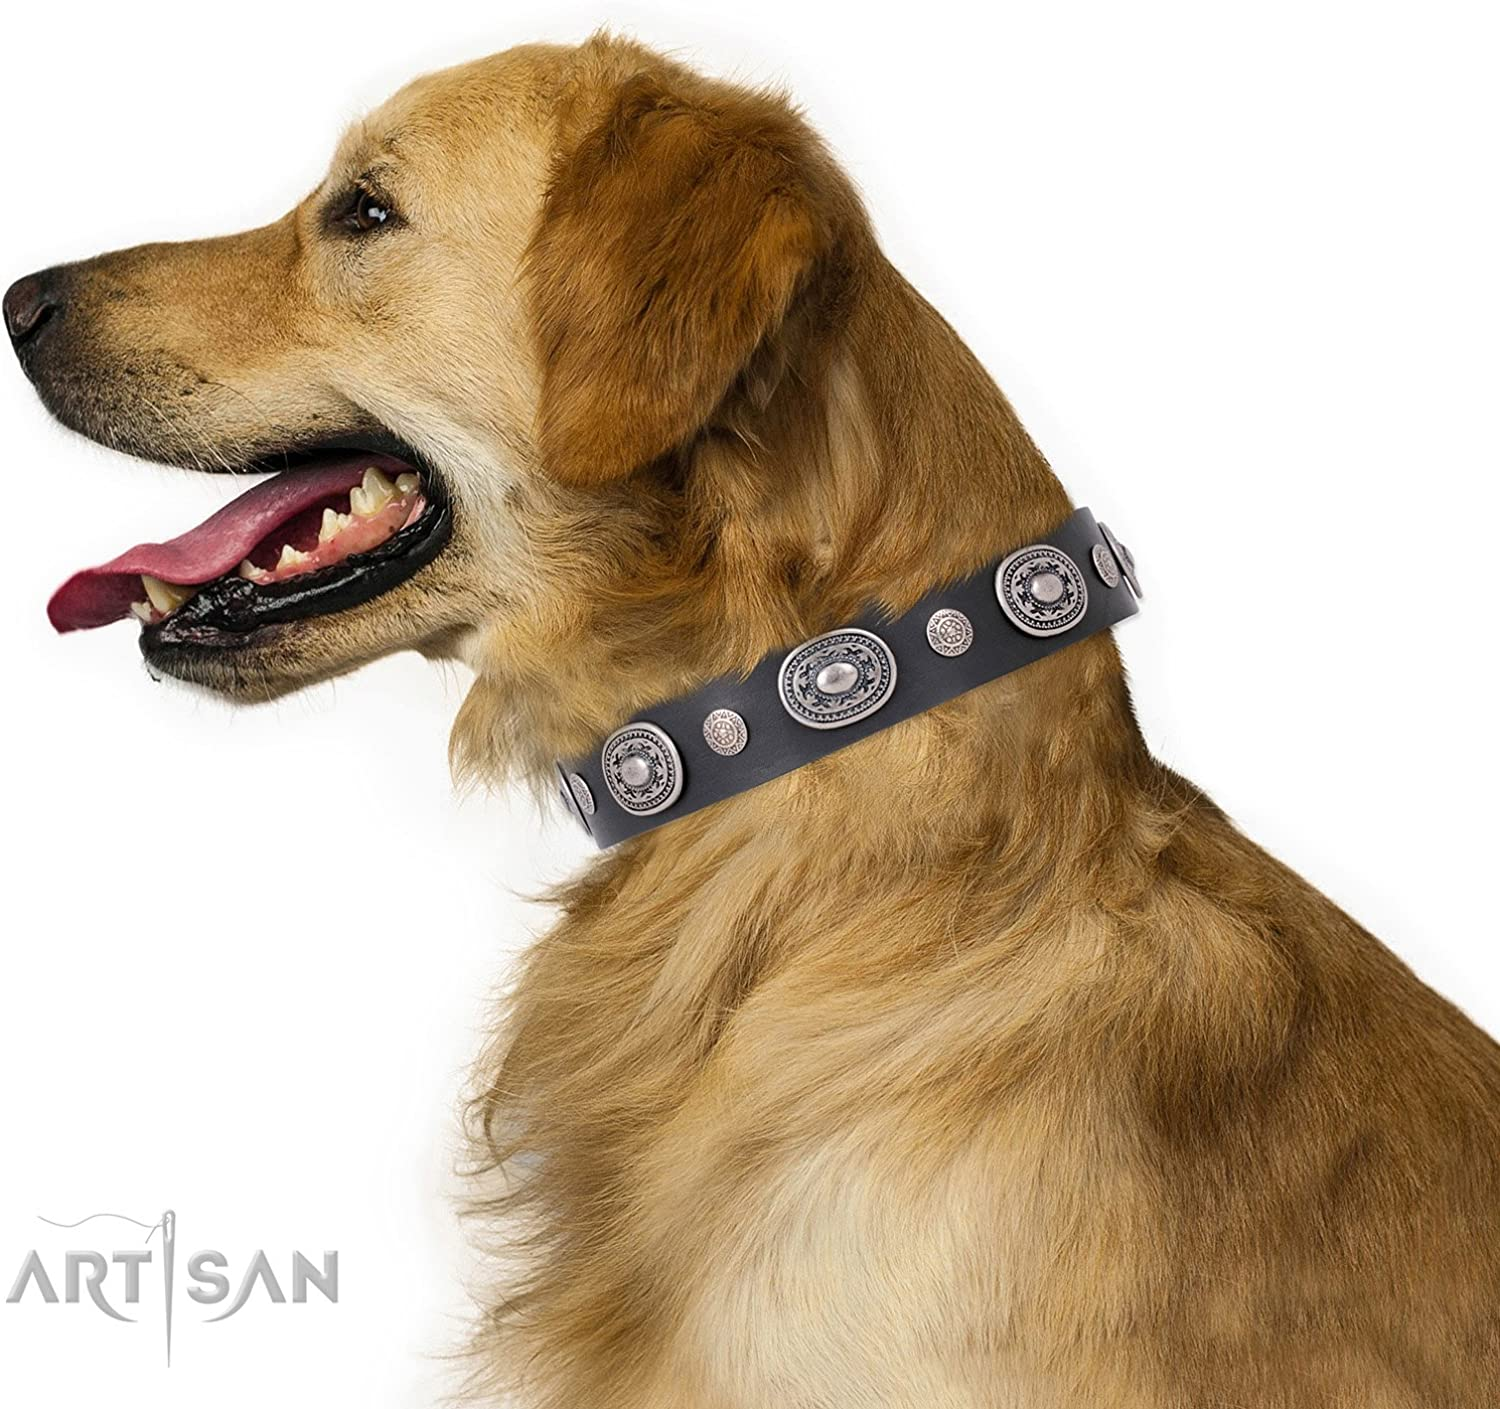 FDT Artisan 35 inch Black Leather Dog Collar with Old Silver Like Decorations  Black Tie  1 1 2 inch (40 mm) Wide